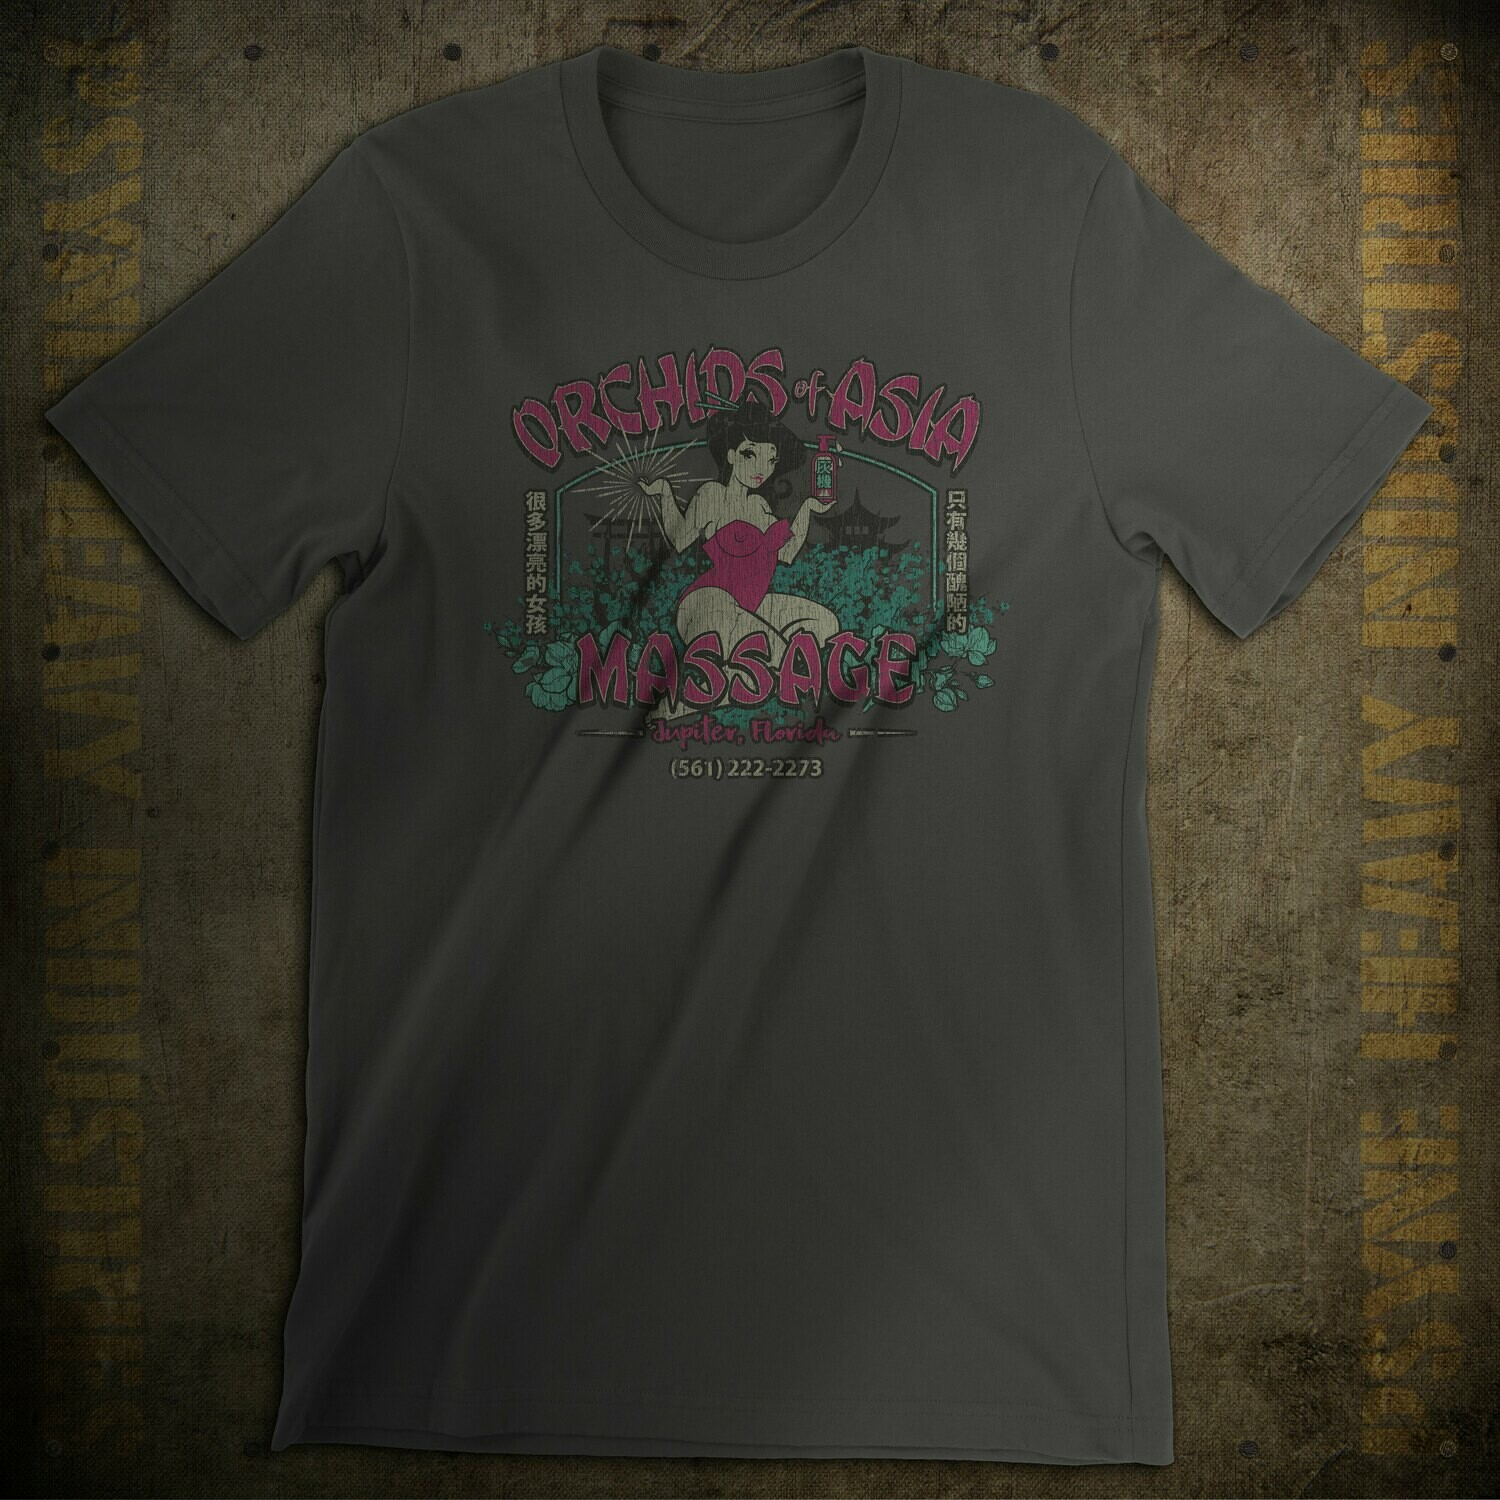 Orchids of Asia Florida Massage Vintage T-Shirt